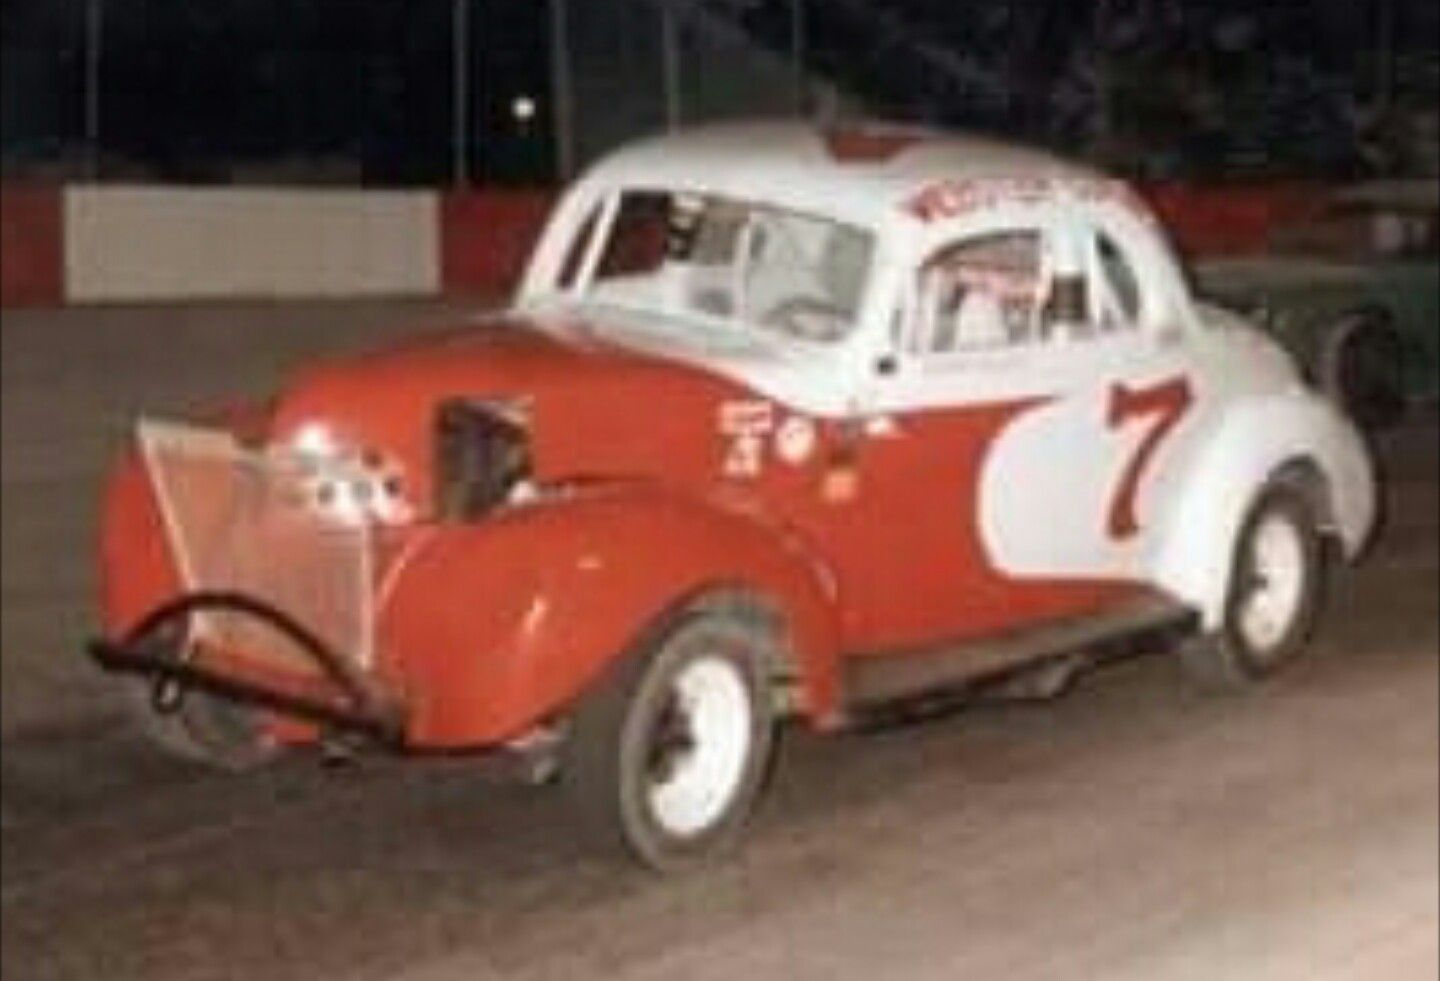 Craig Nelson S 7 1940 Ford Coupe Stock Car Race Cars